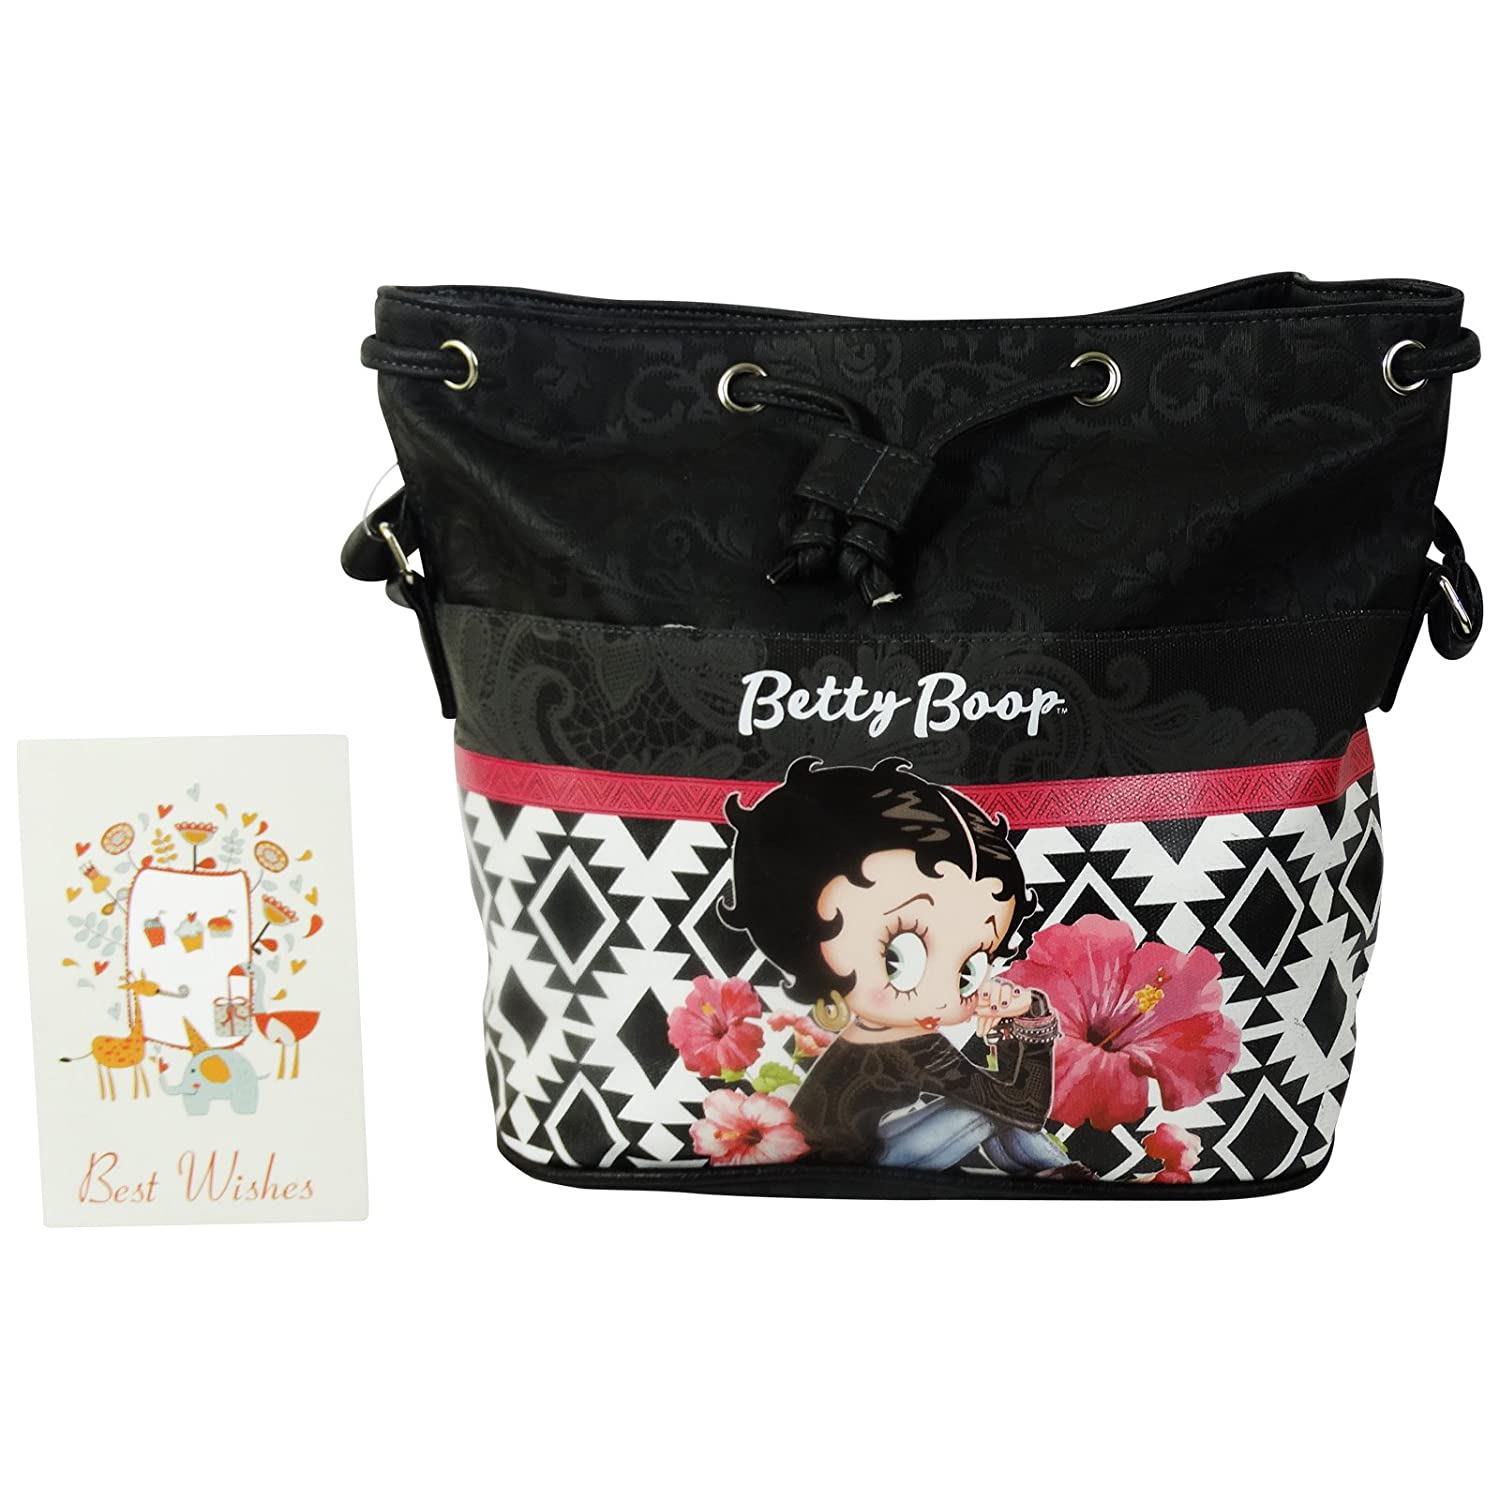 Betty Boop Tribal Bucket Bag Shoulder Bag Handbag Bu